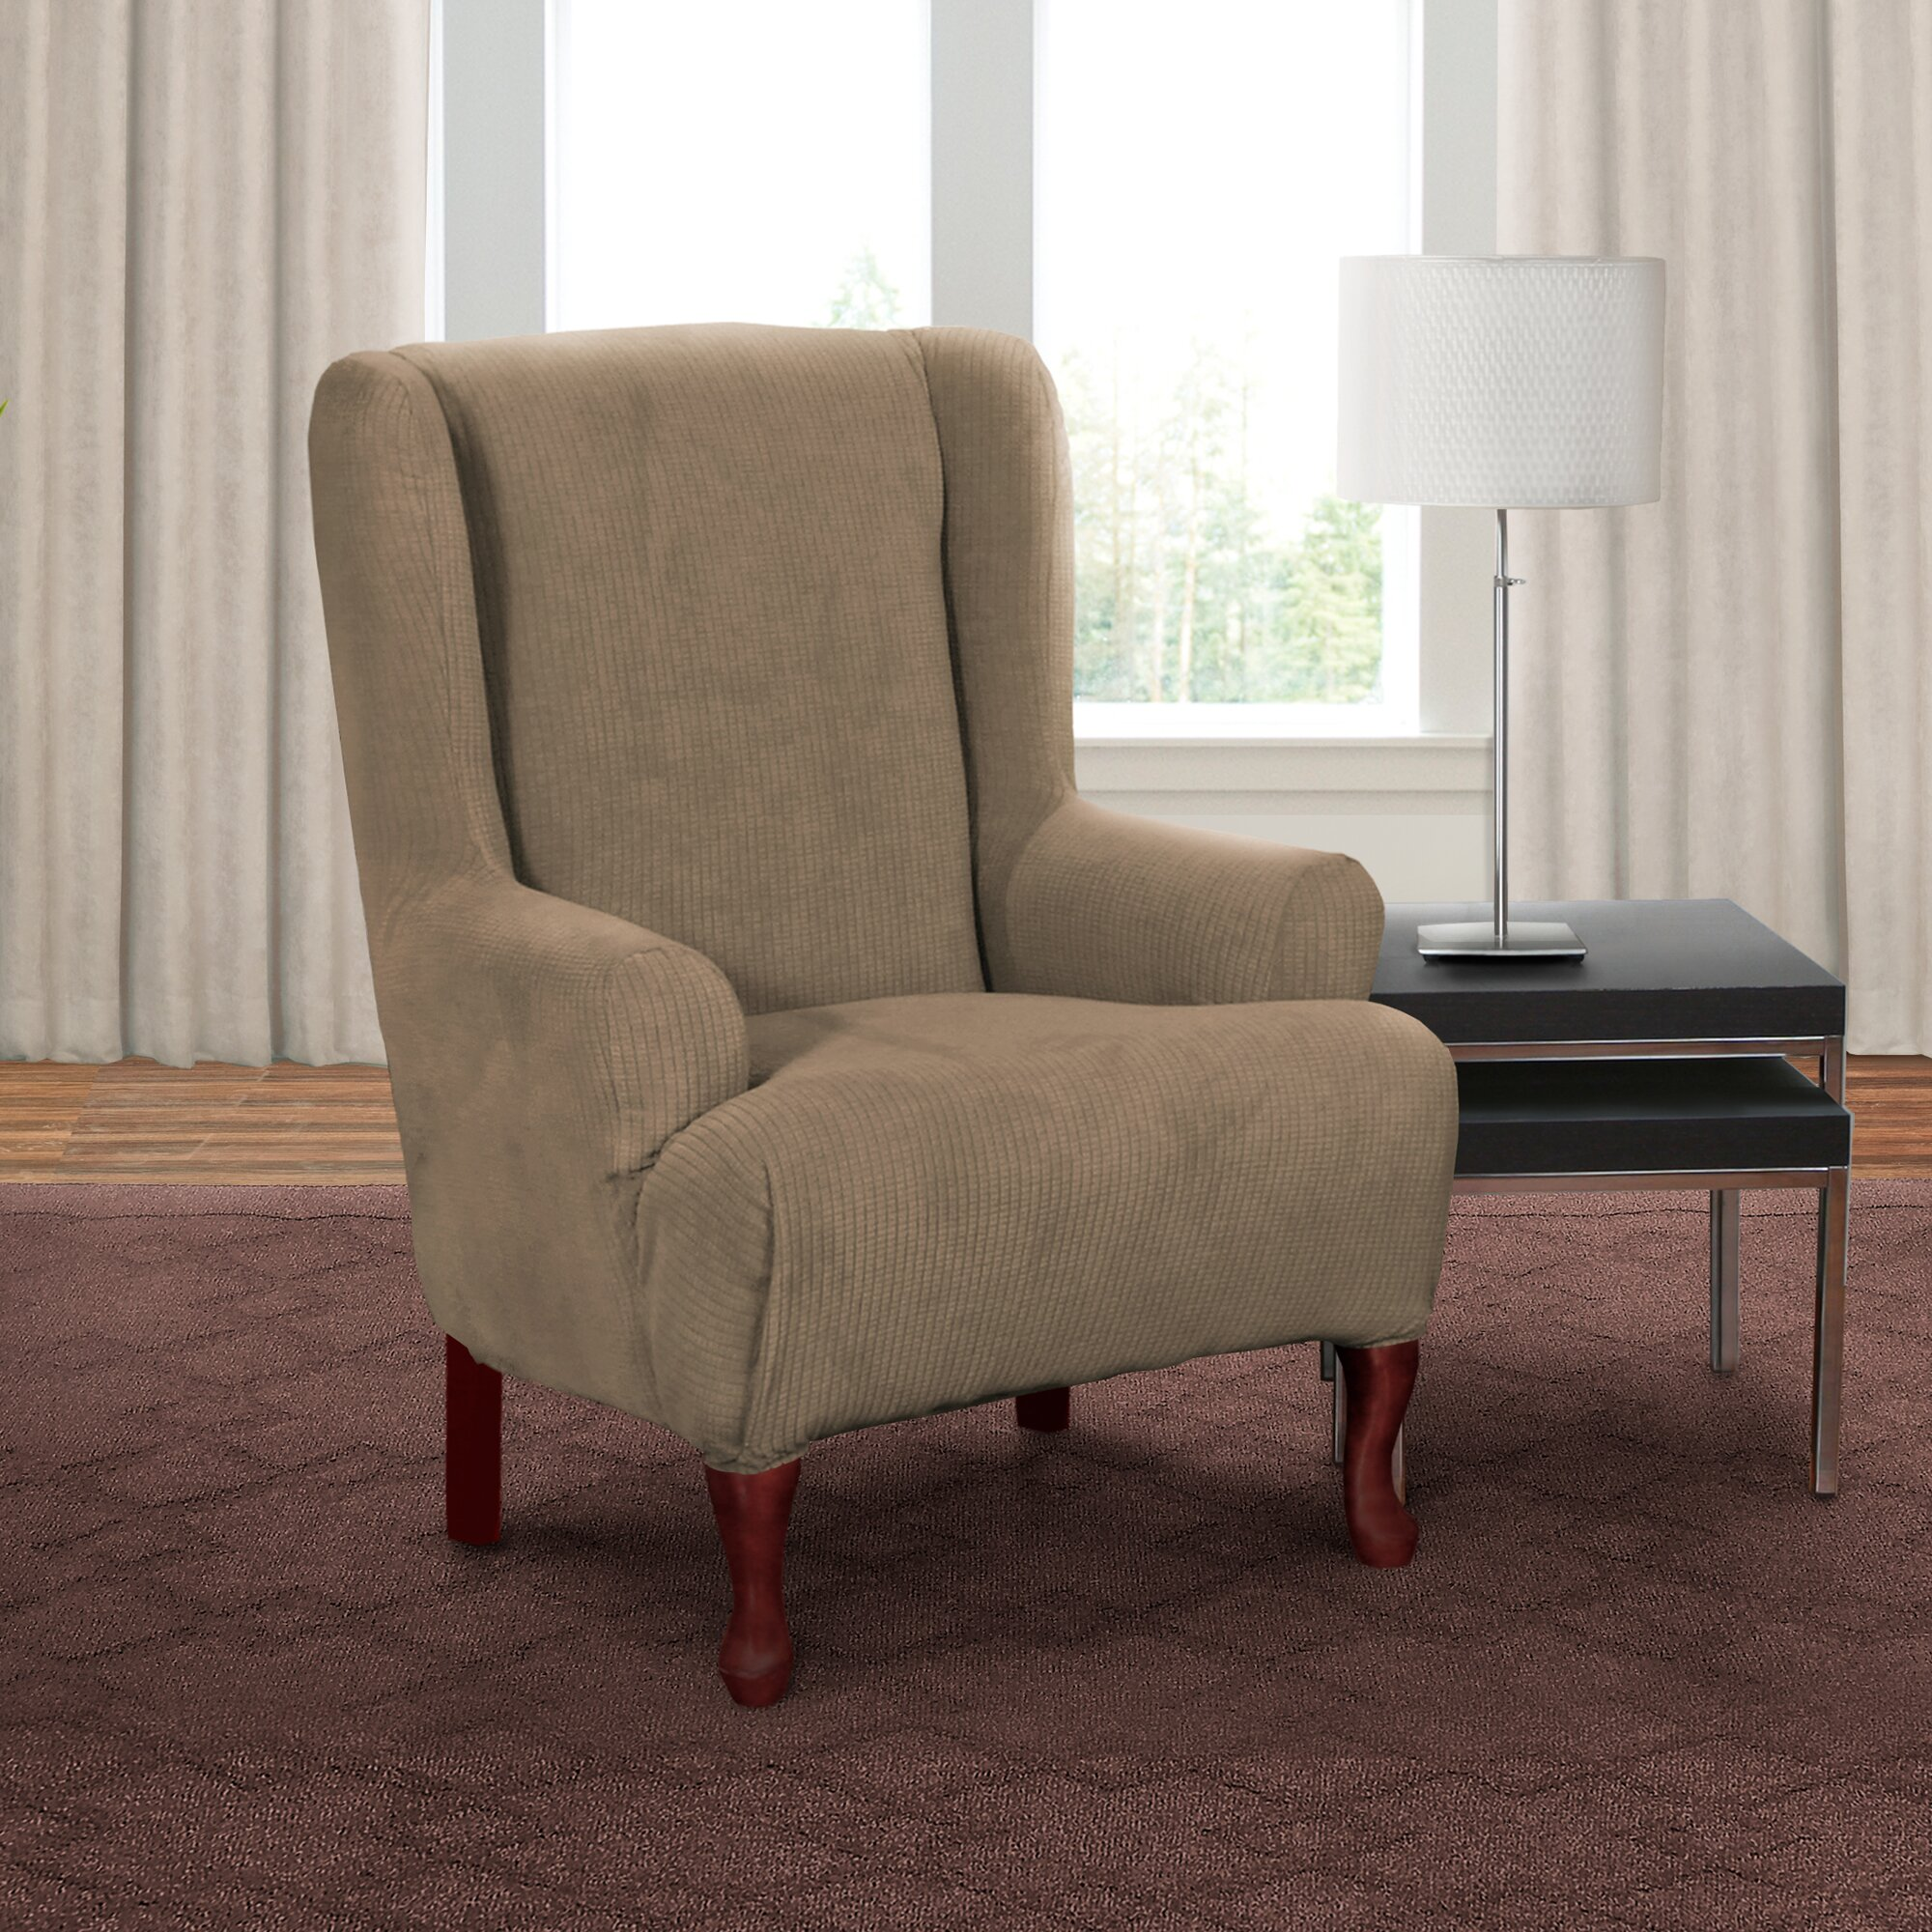 Red Barrel Studio Parson Chair T Cushion Slipcover